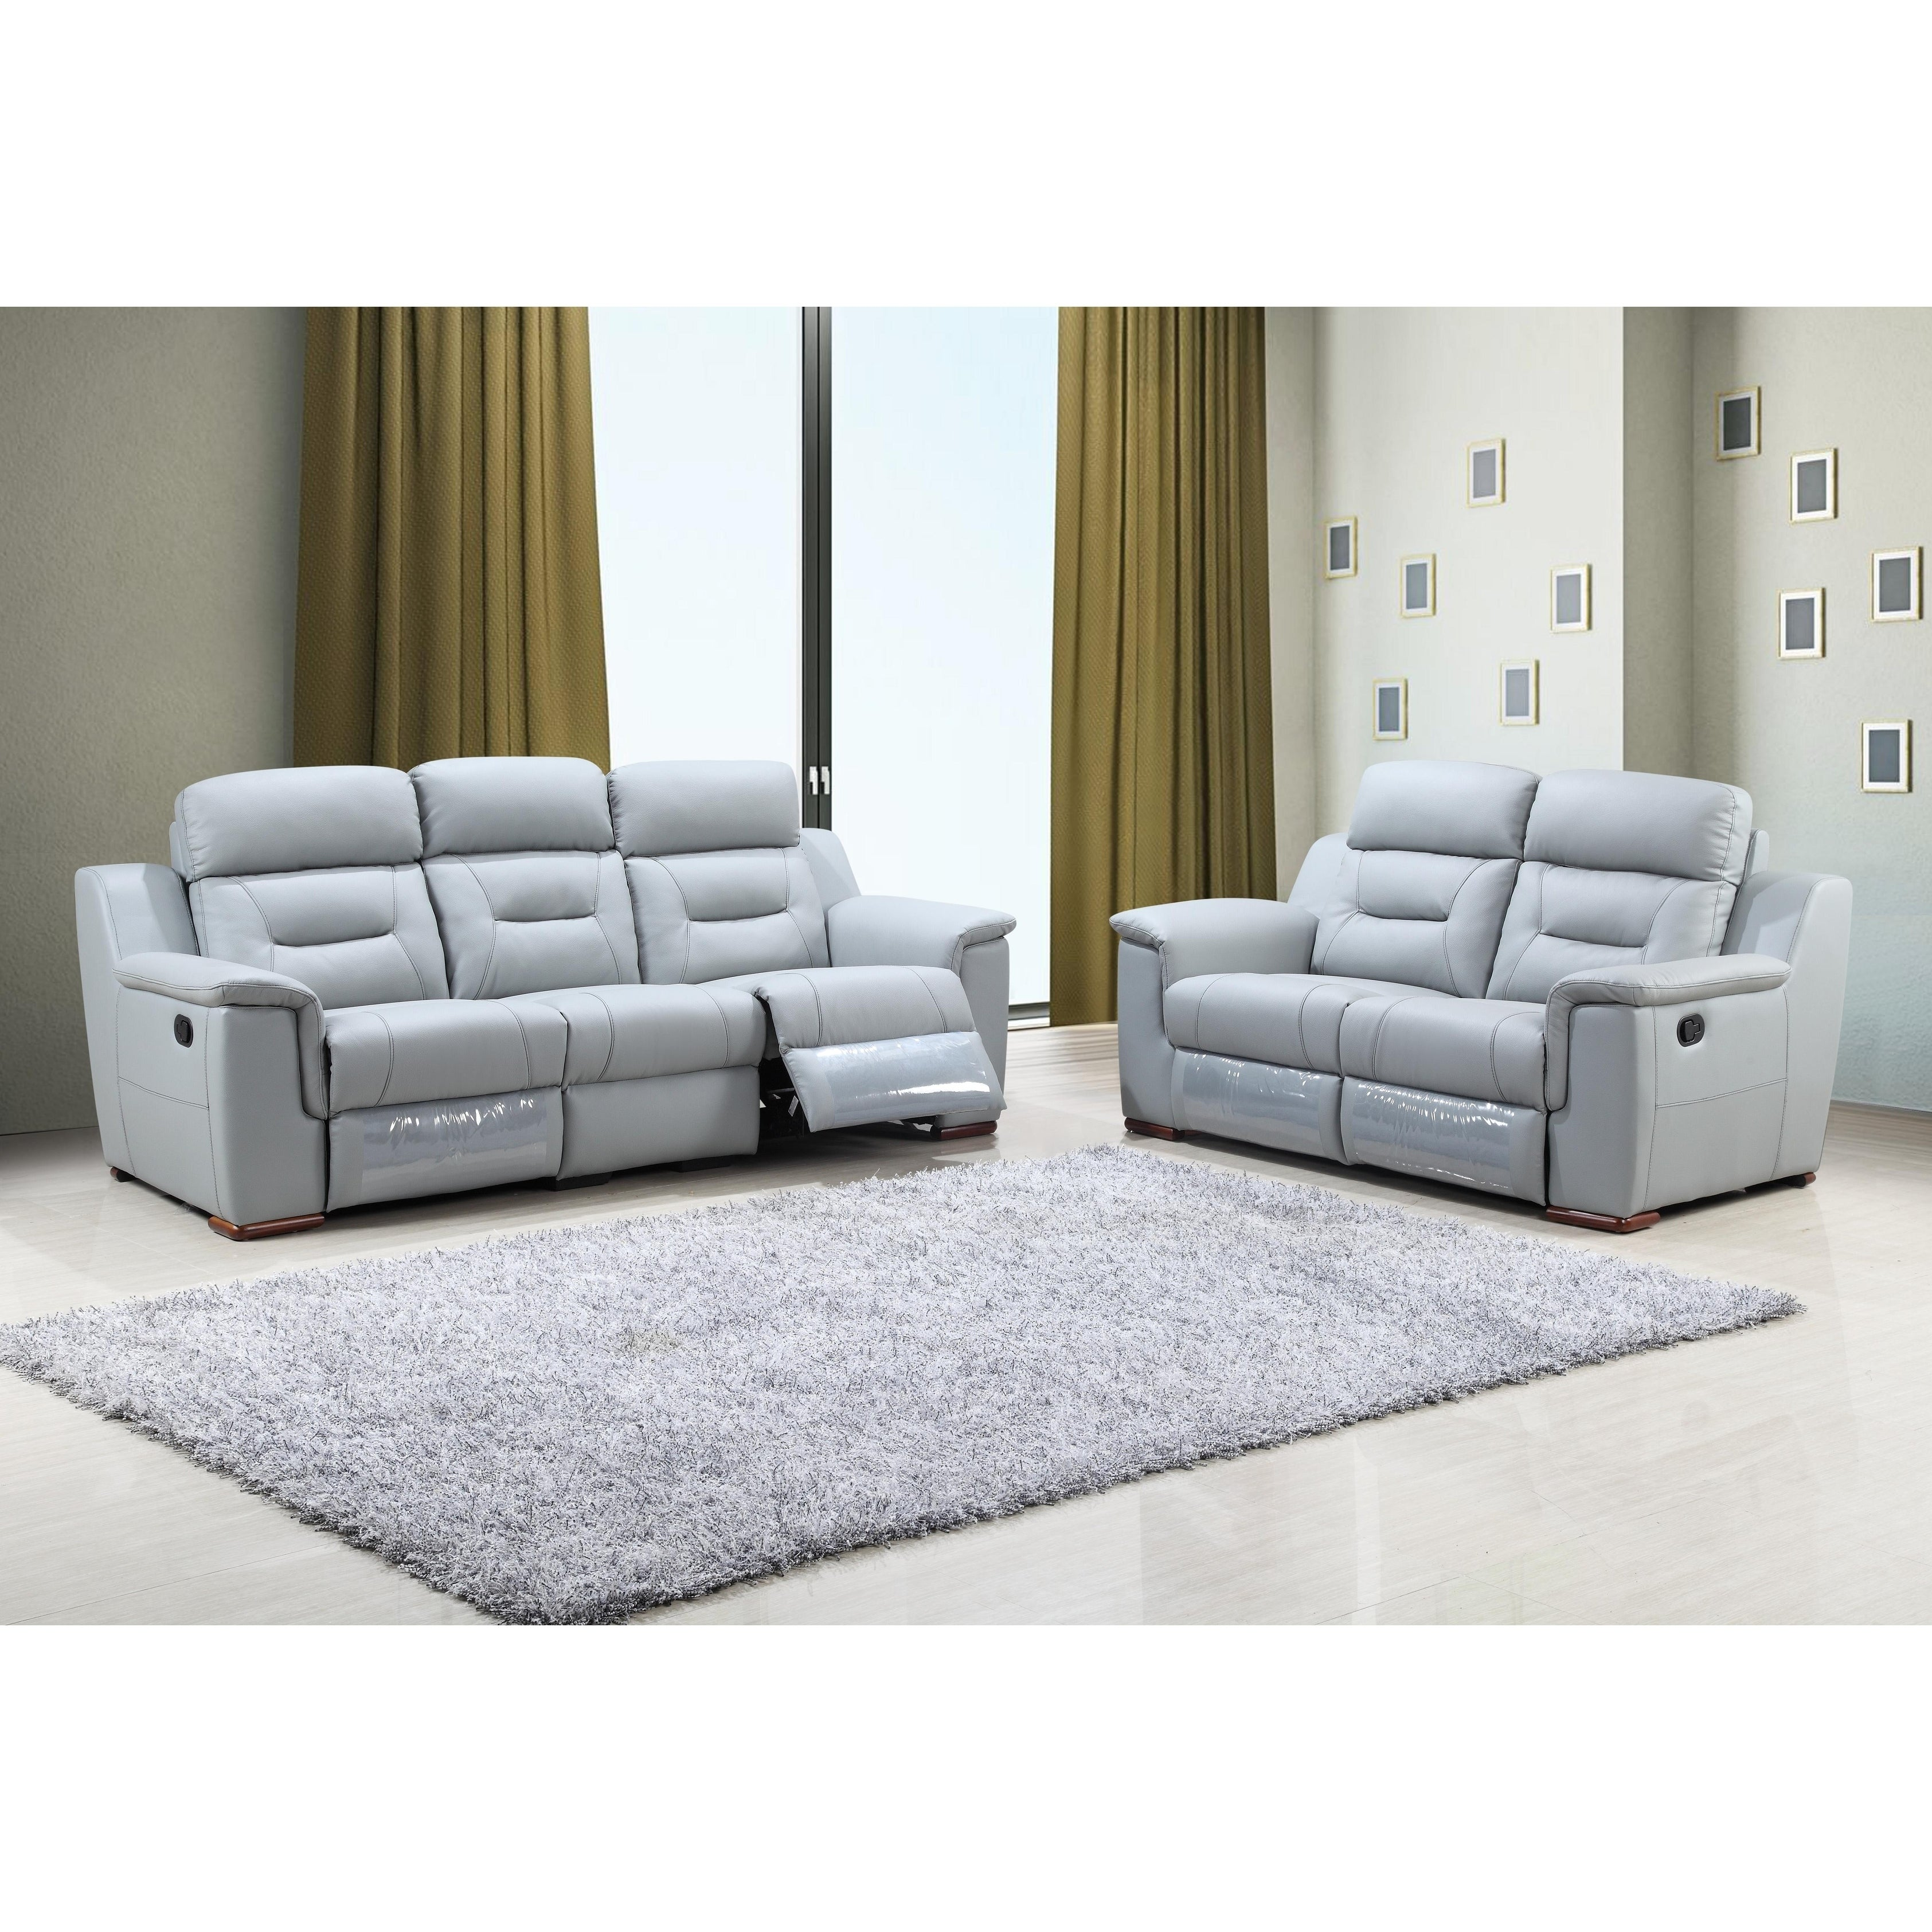 Awe Inspiring Walker Faux Leather Upholstered 2 Piece Living Room Sofa Set Caraccident5 Cool Chair Designs And Ideas Caraccident5Info